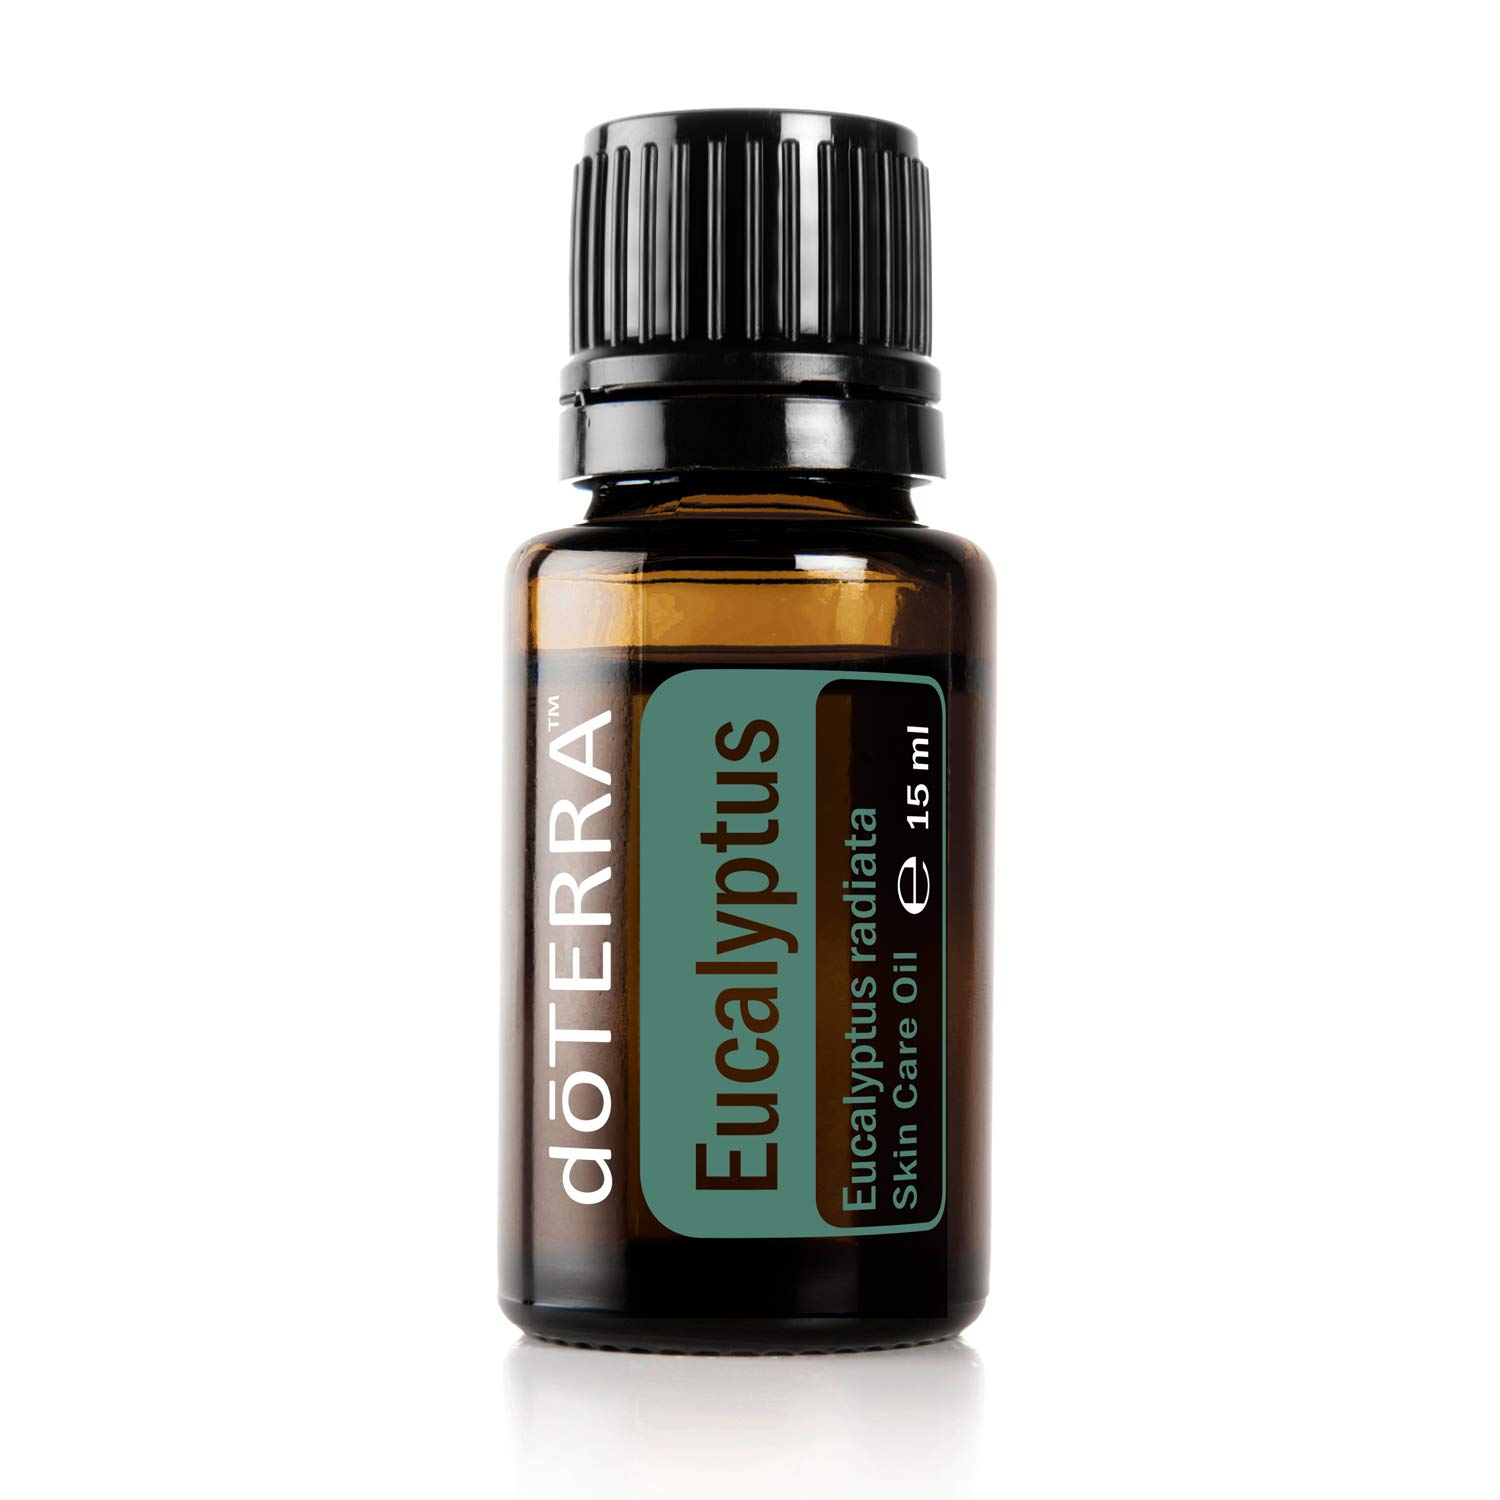 doTERRA - Eucalyptus Radiata Essential Oil - Helps to Clear the Mind, Promotes Feelings of Relaxation and Clear Breathing; For Diffusion or Topical Use - 15 ml